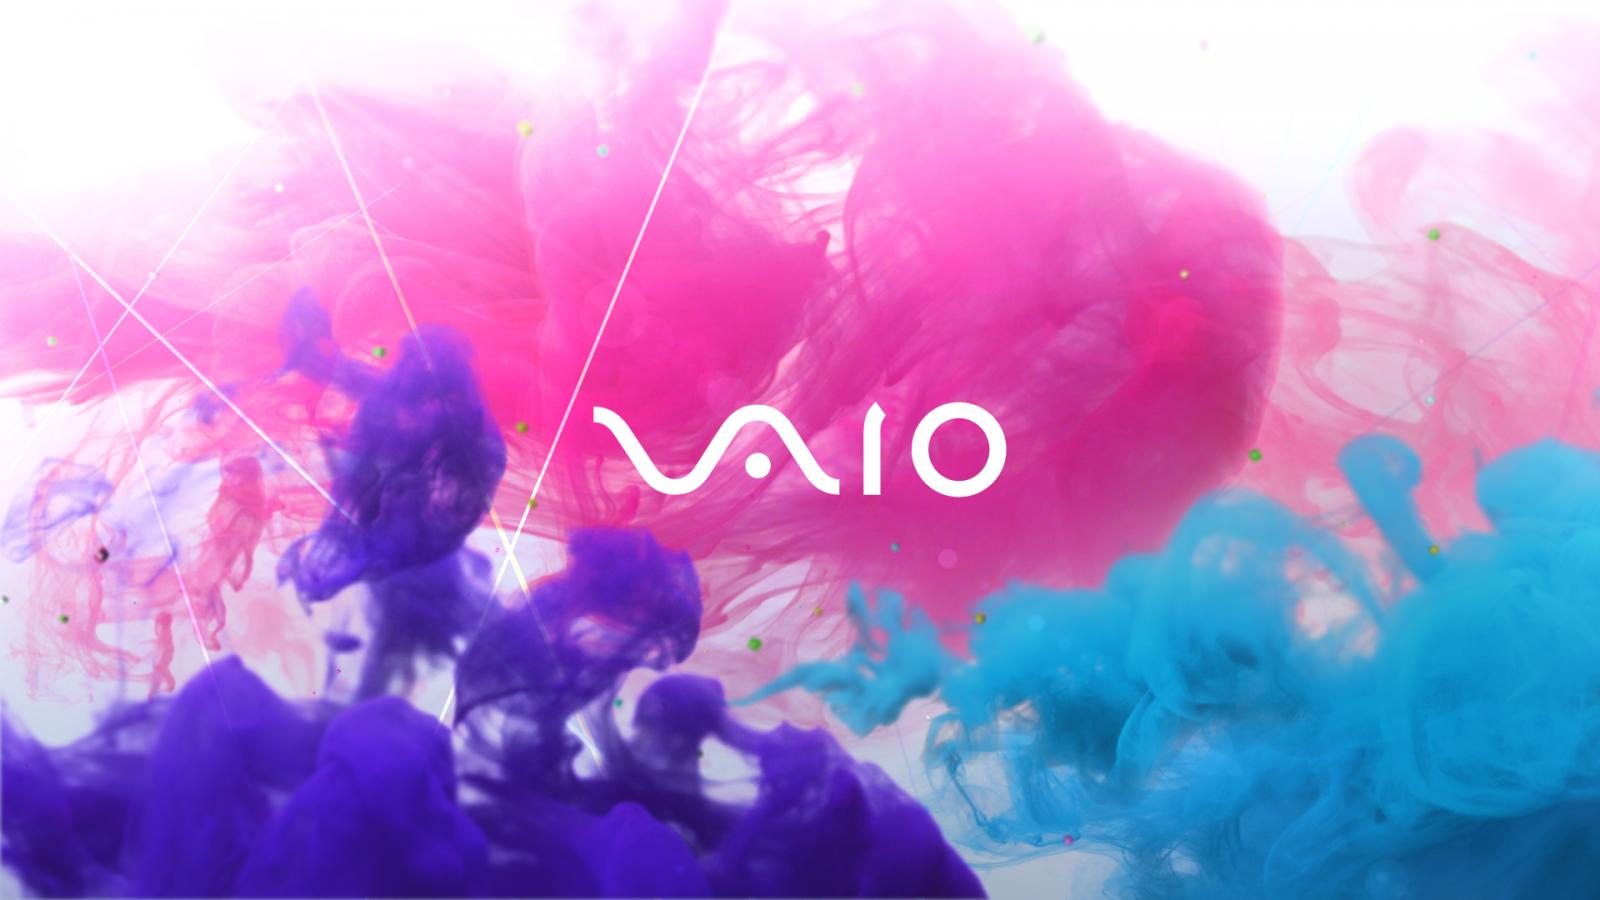 sony vaio wallpapers full hd